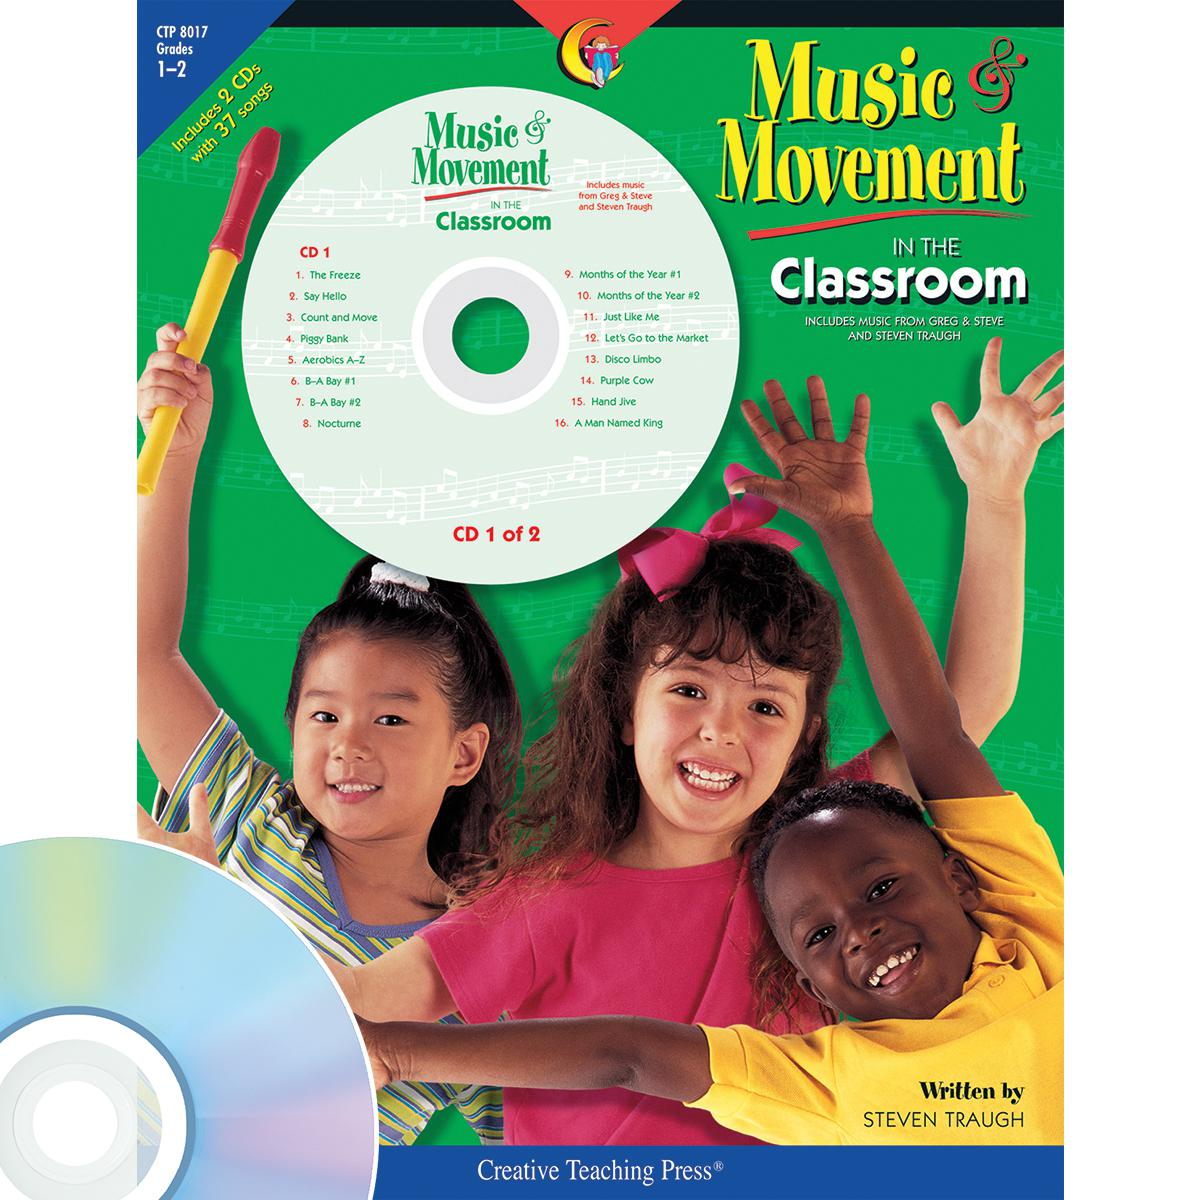 Music & Movement in the Classroom Grade 1-2